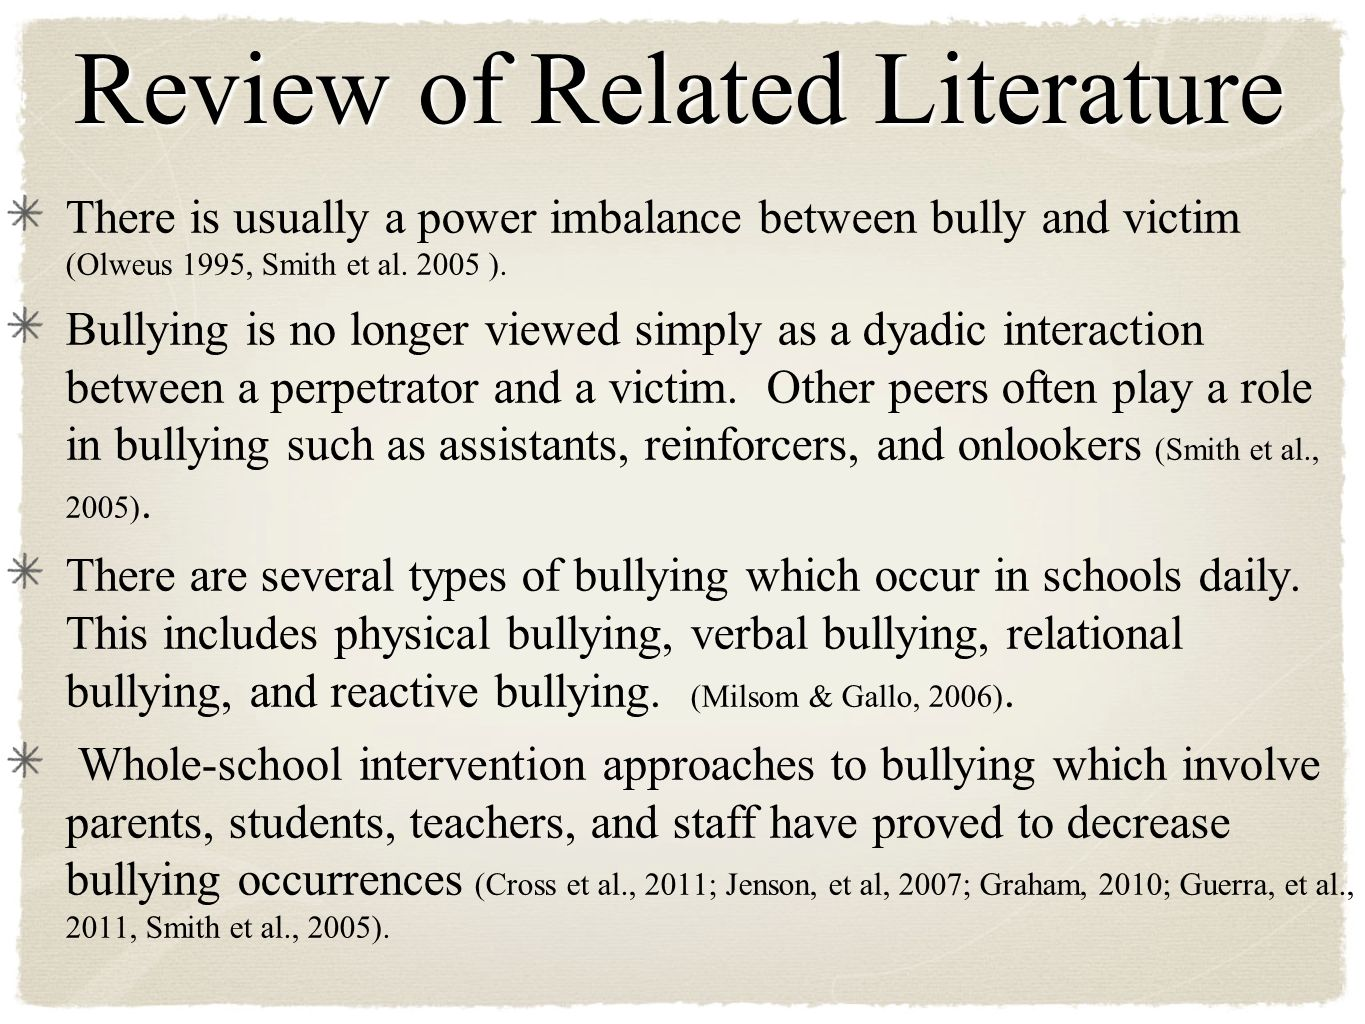 review of related literature about bullying philippines This law finds applicability in school-related bullying, student-student bullying in  particular, which covers those uttered in social media.